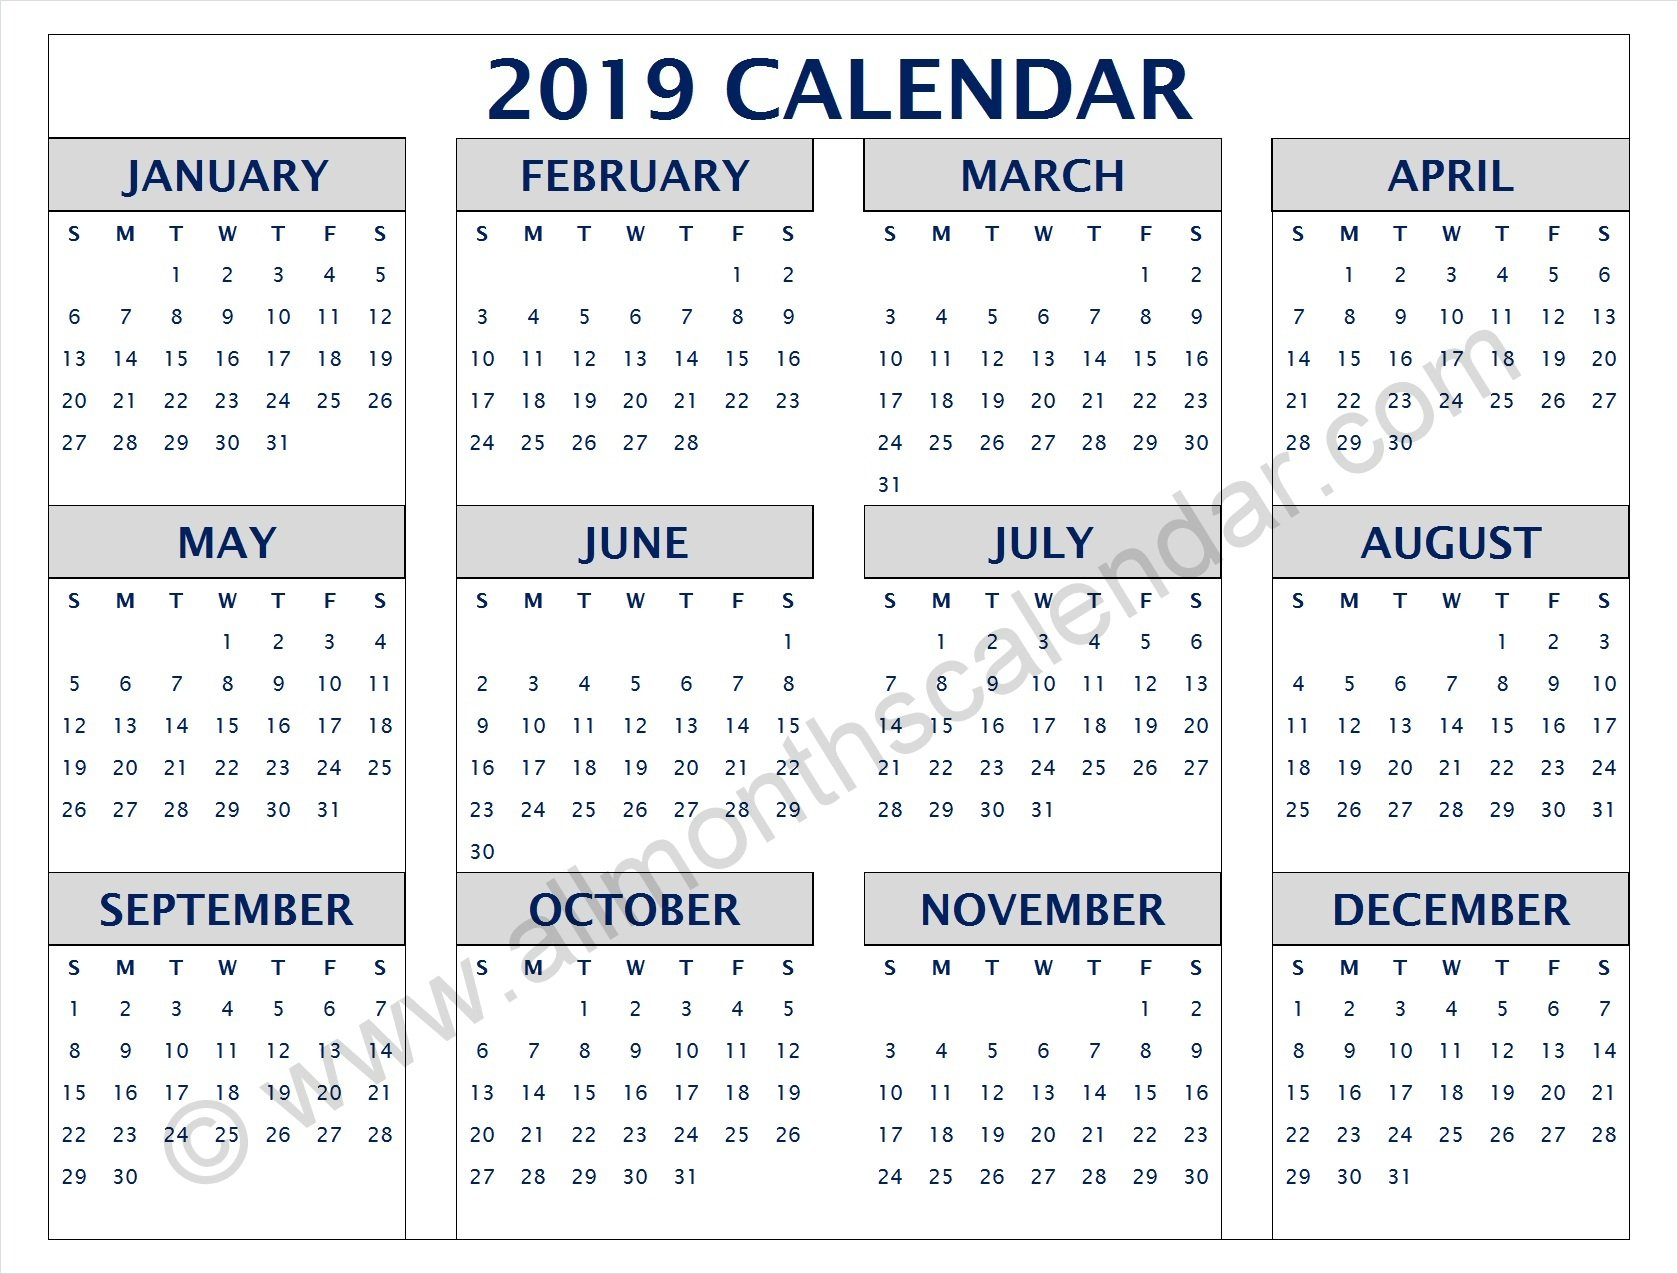 Yearly 2019 Calendar Pdf | 12 Month 2019 Calendar Printable Calendar Of 2019 Pdf